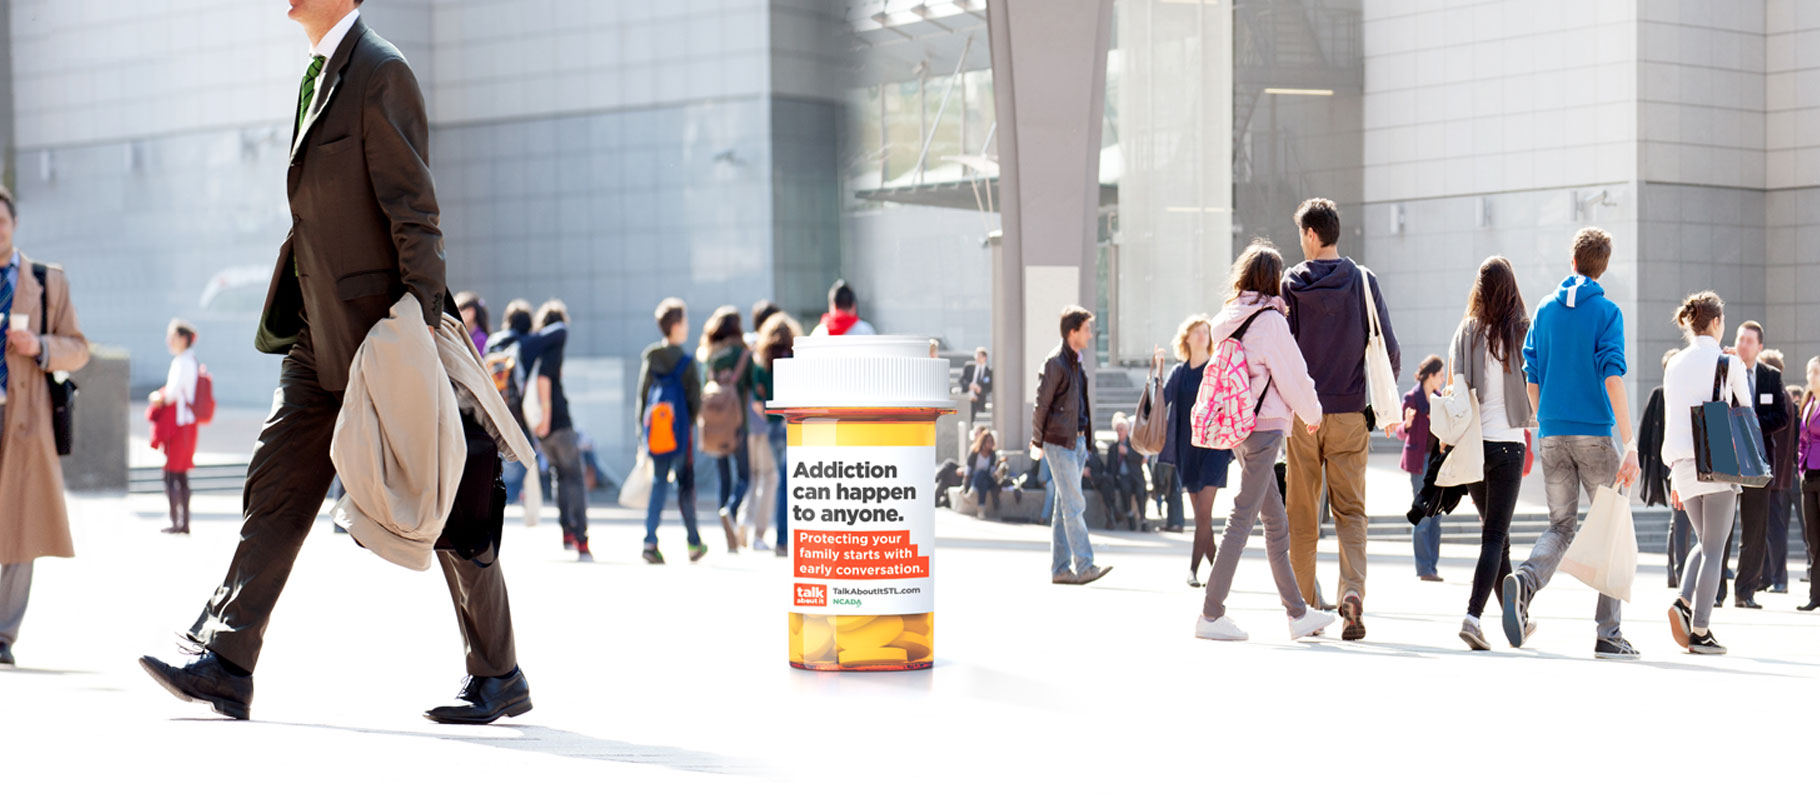 Talk About It pill bottle in the middle of a public space with people walking around it